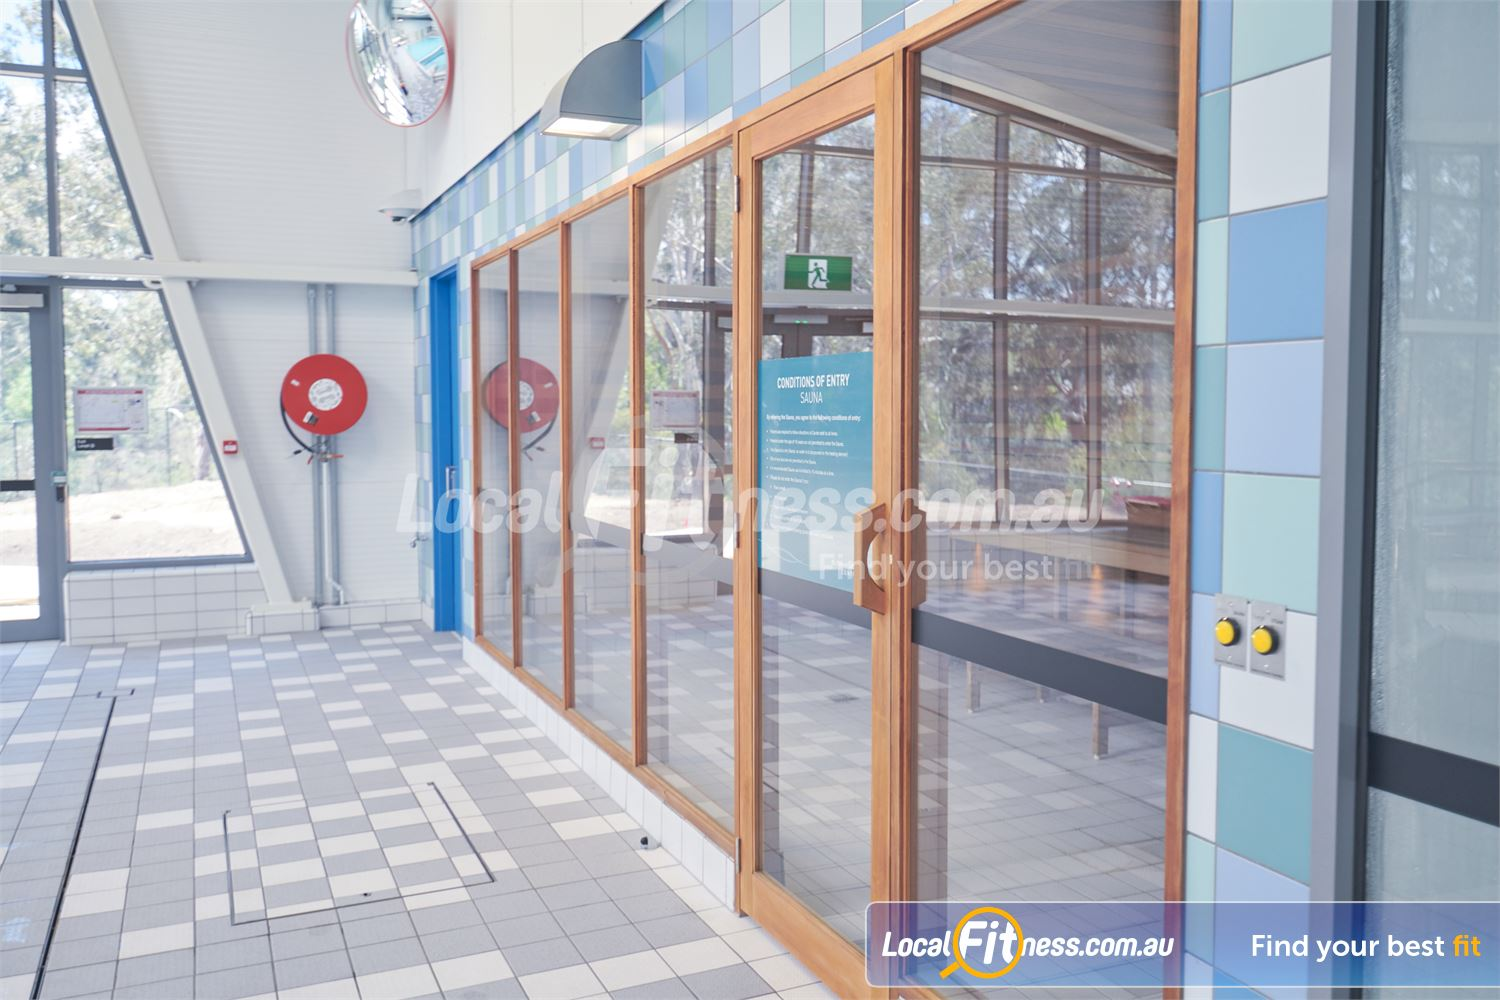 Eltham Leisure Centre Near North Warrandyte Detox your body with our sauna facility.